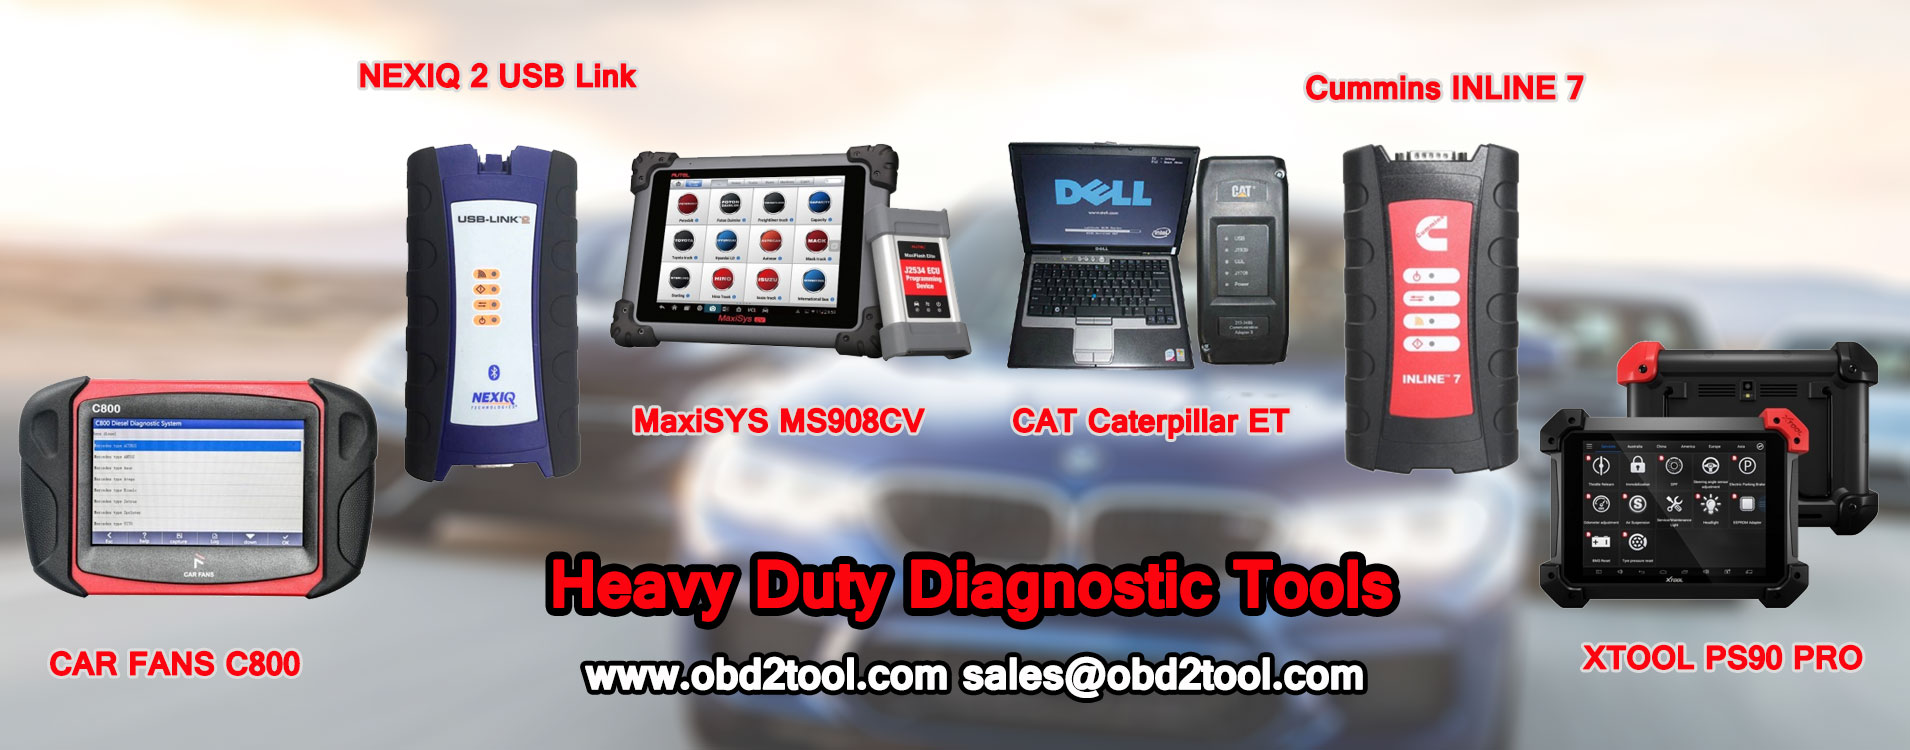 Heavy Duty Diagnostic Tools